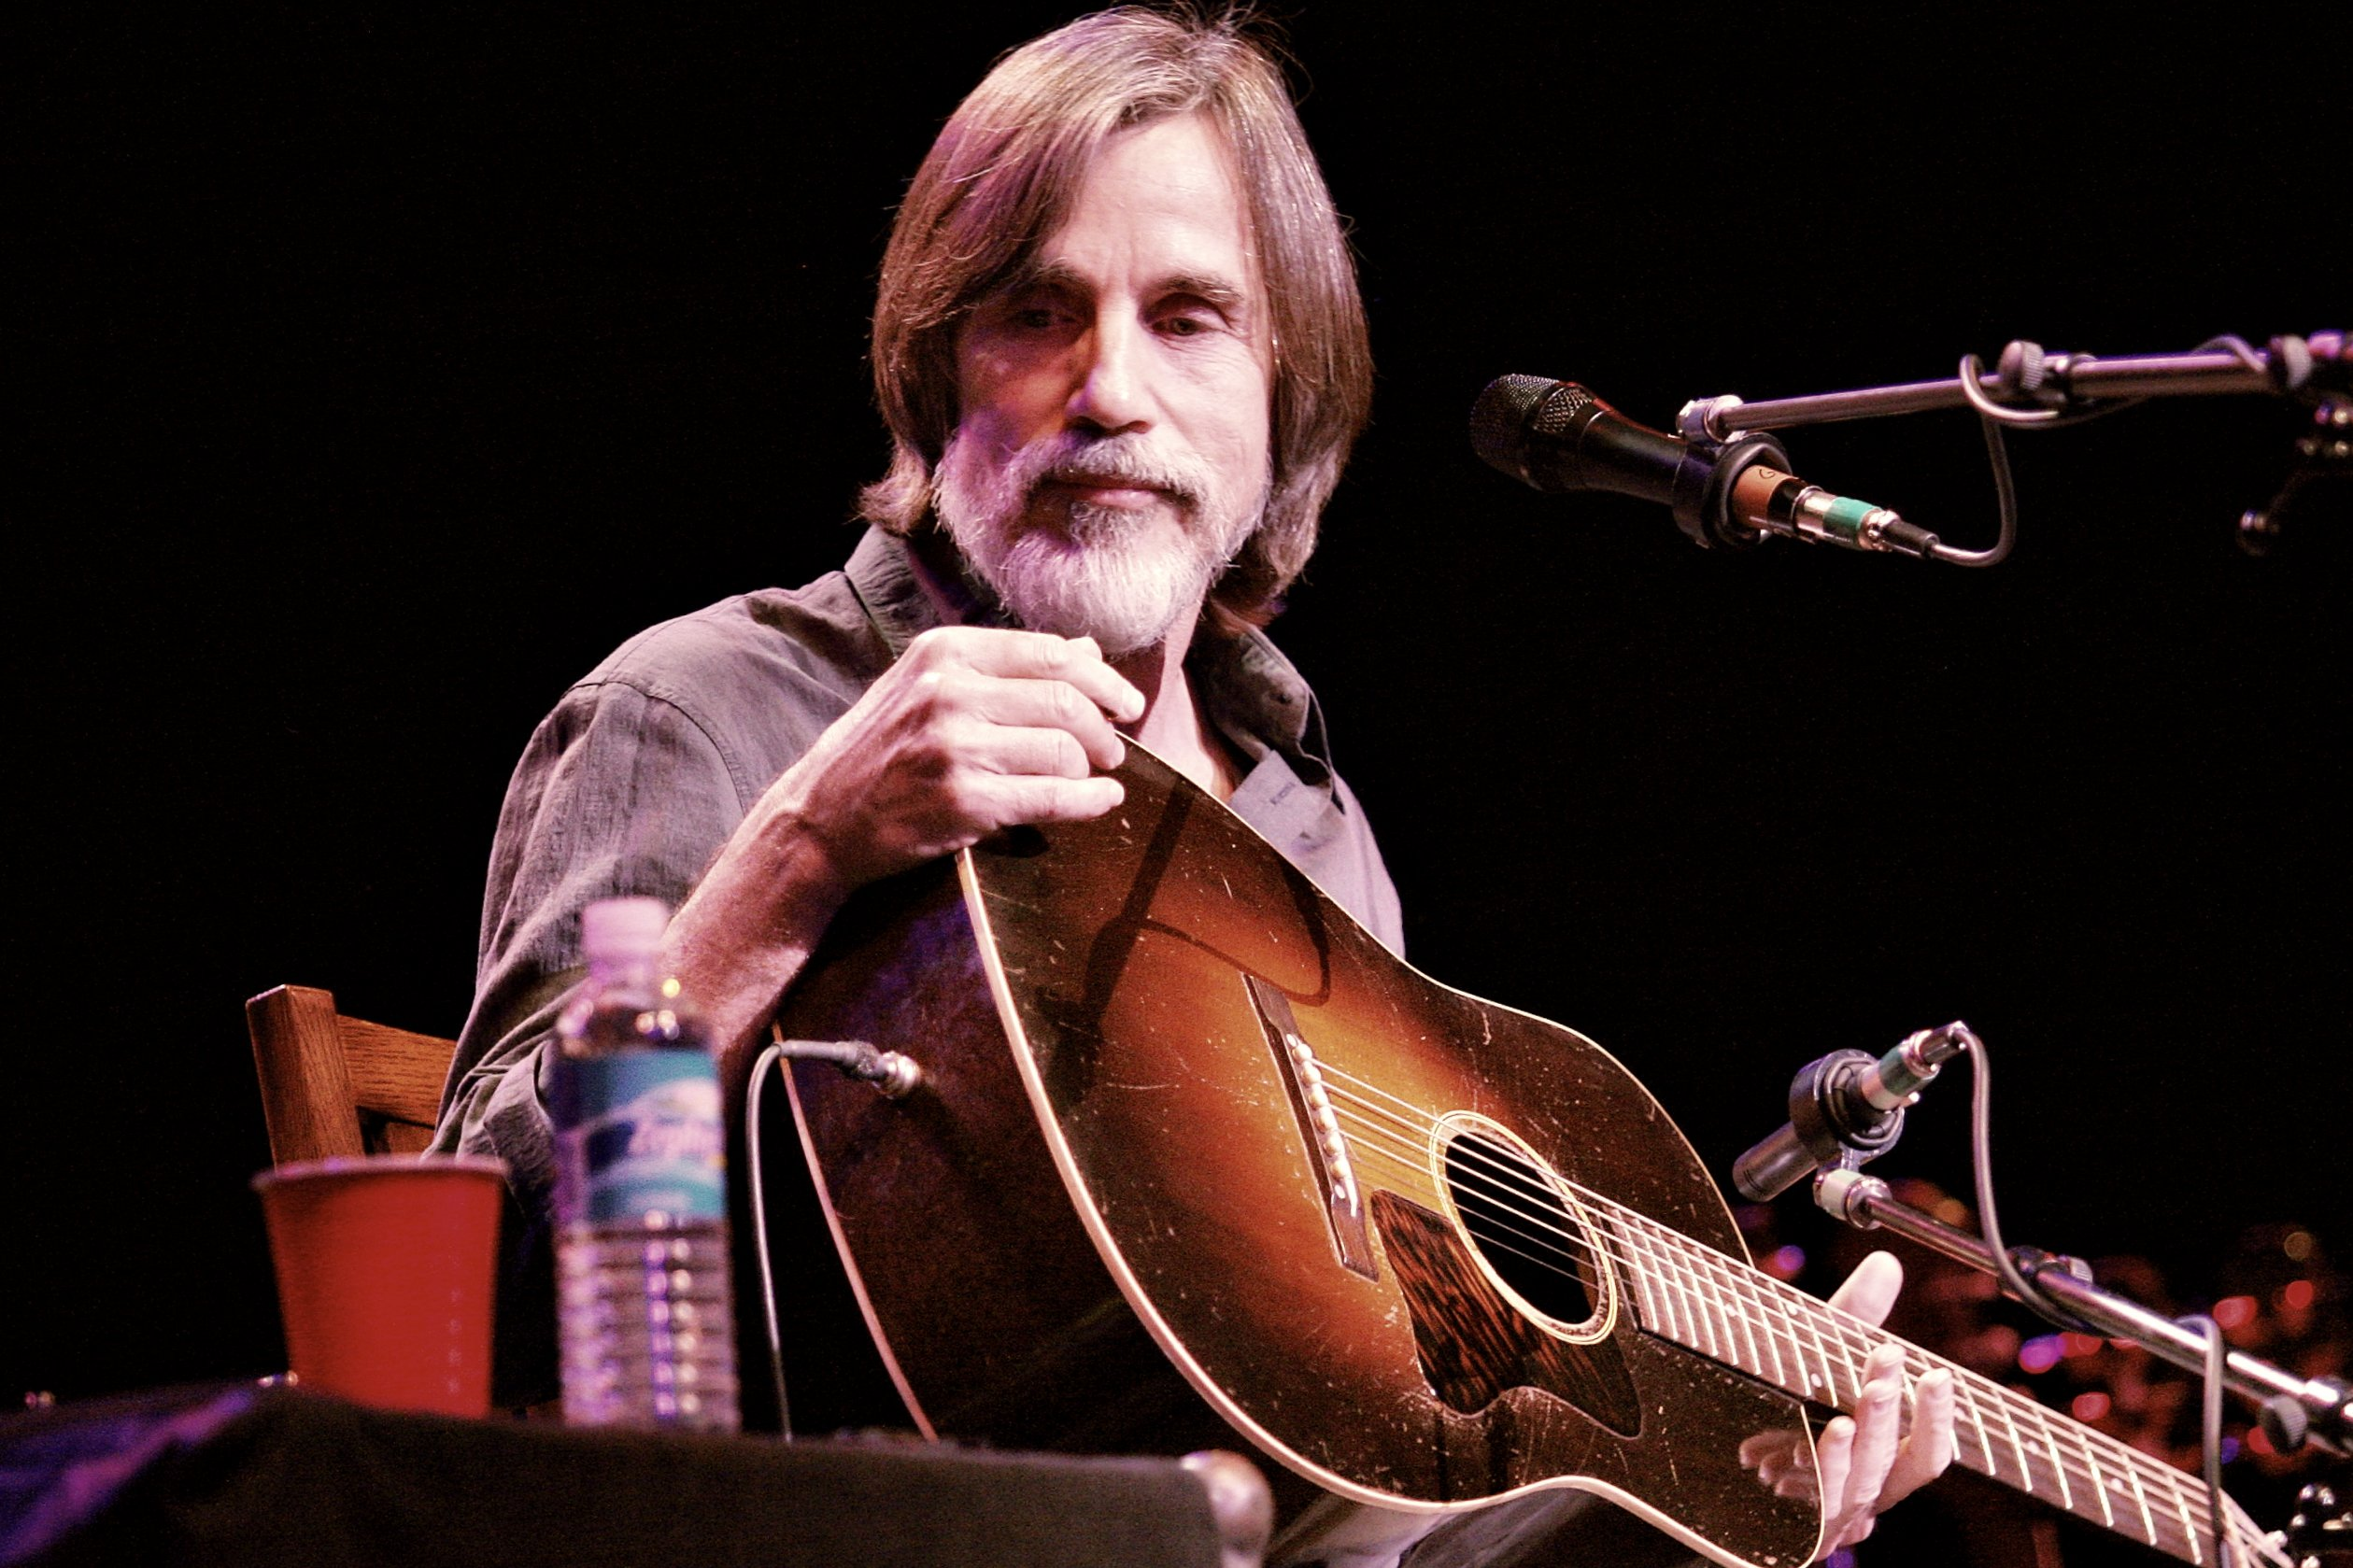 Jackson Browne Married Cool cohen jackson browne married